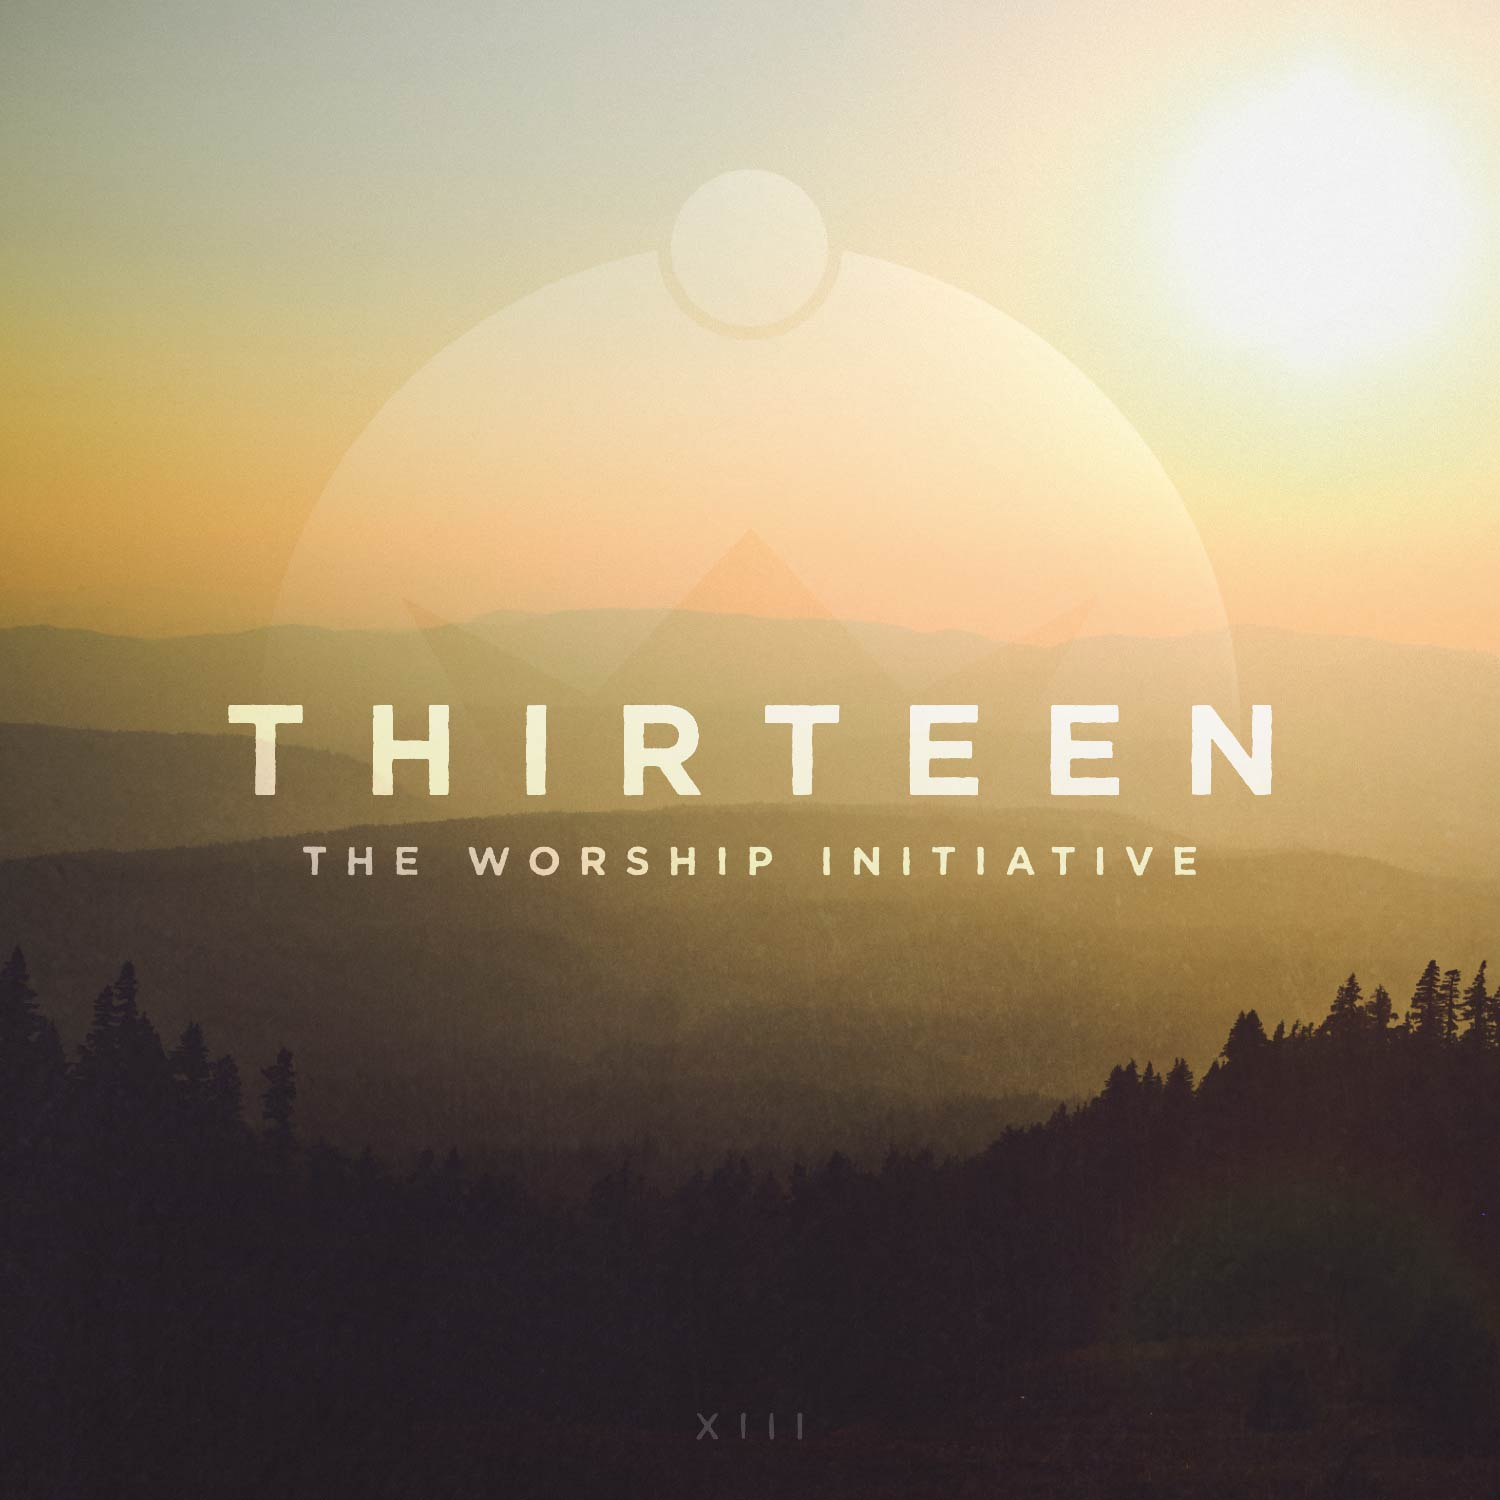 Songs at The Worship Initiative — The Worship Initiative